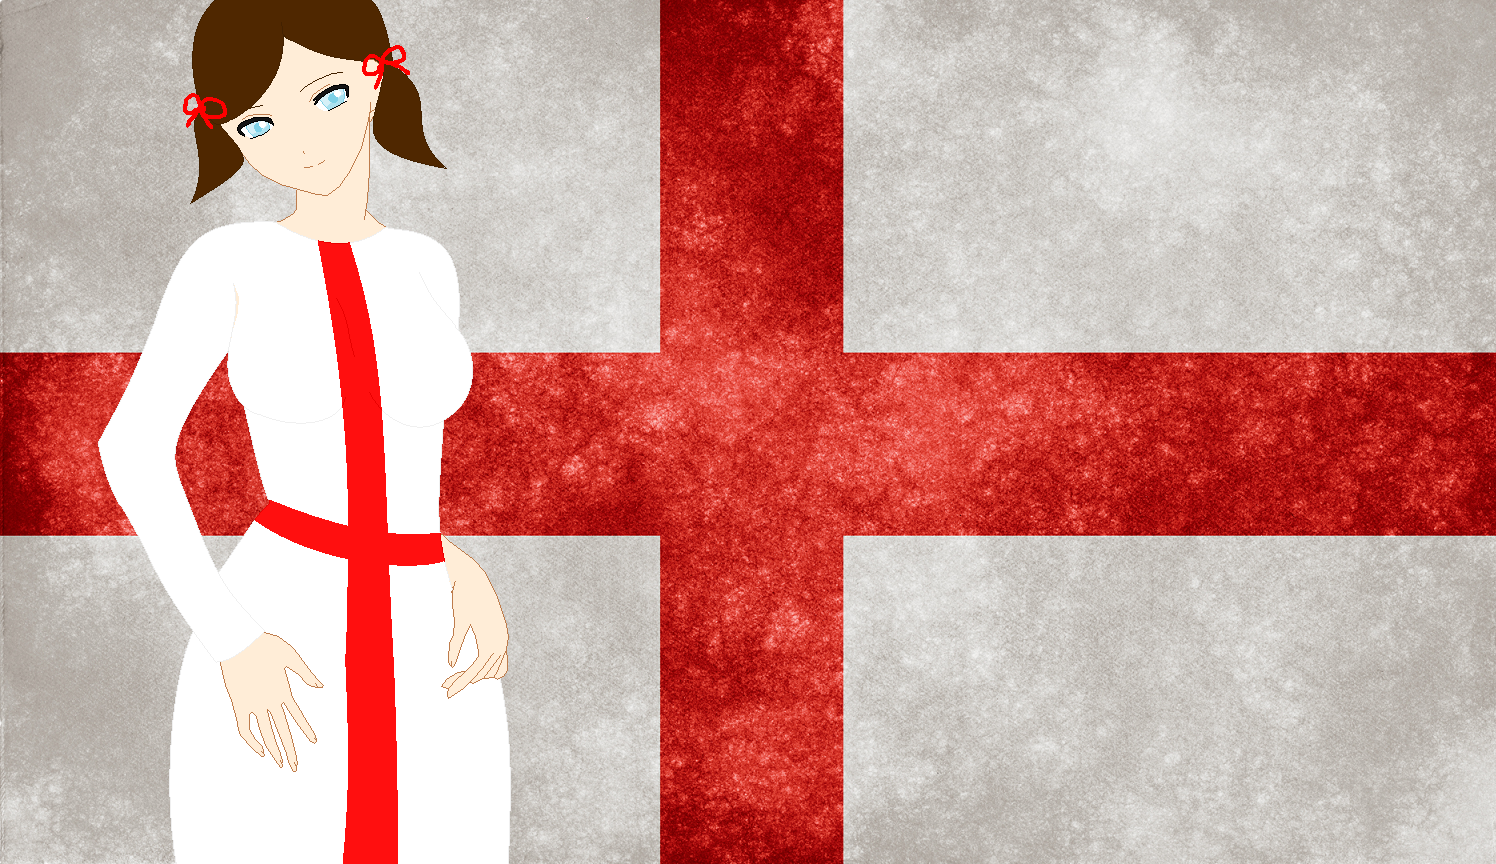 hm csf england flag background by abthebutterfly on deviantart